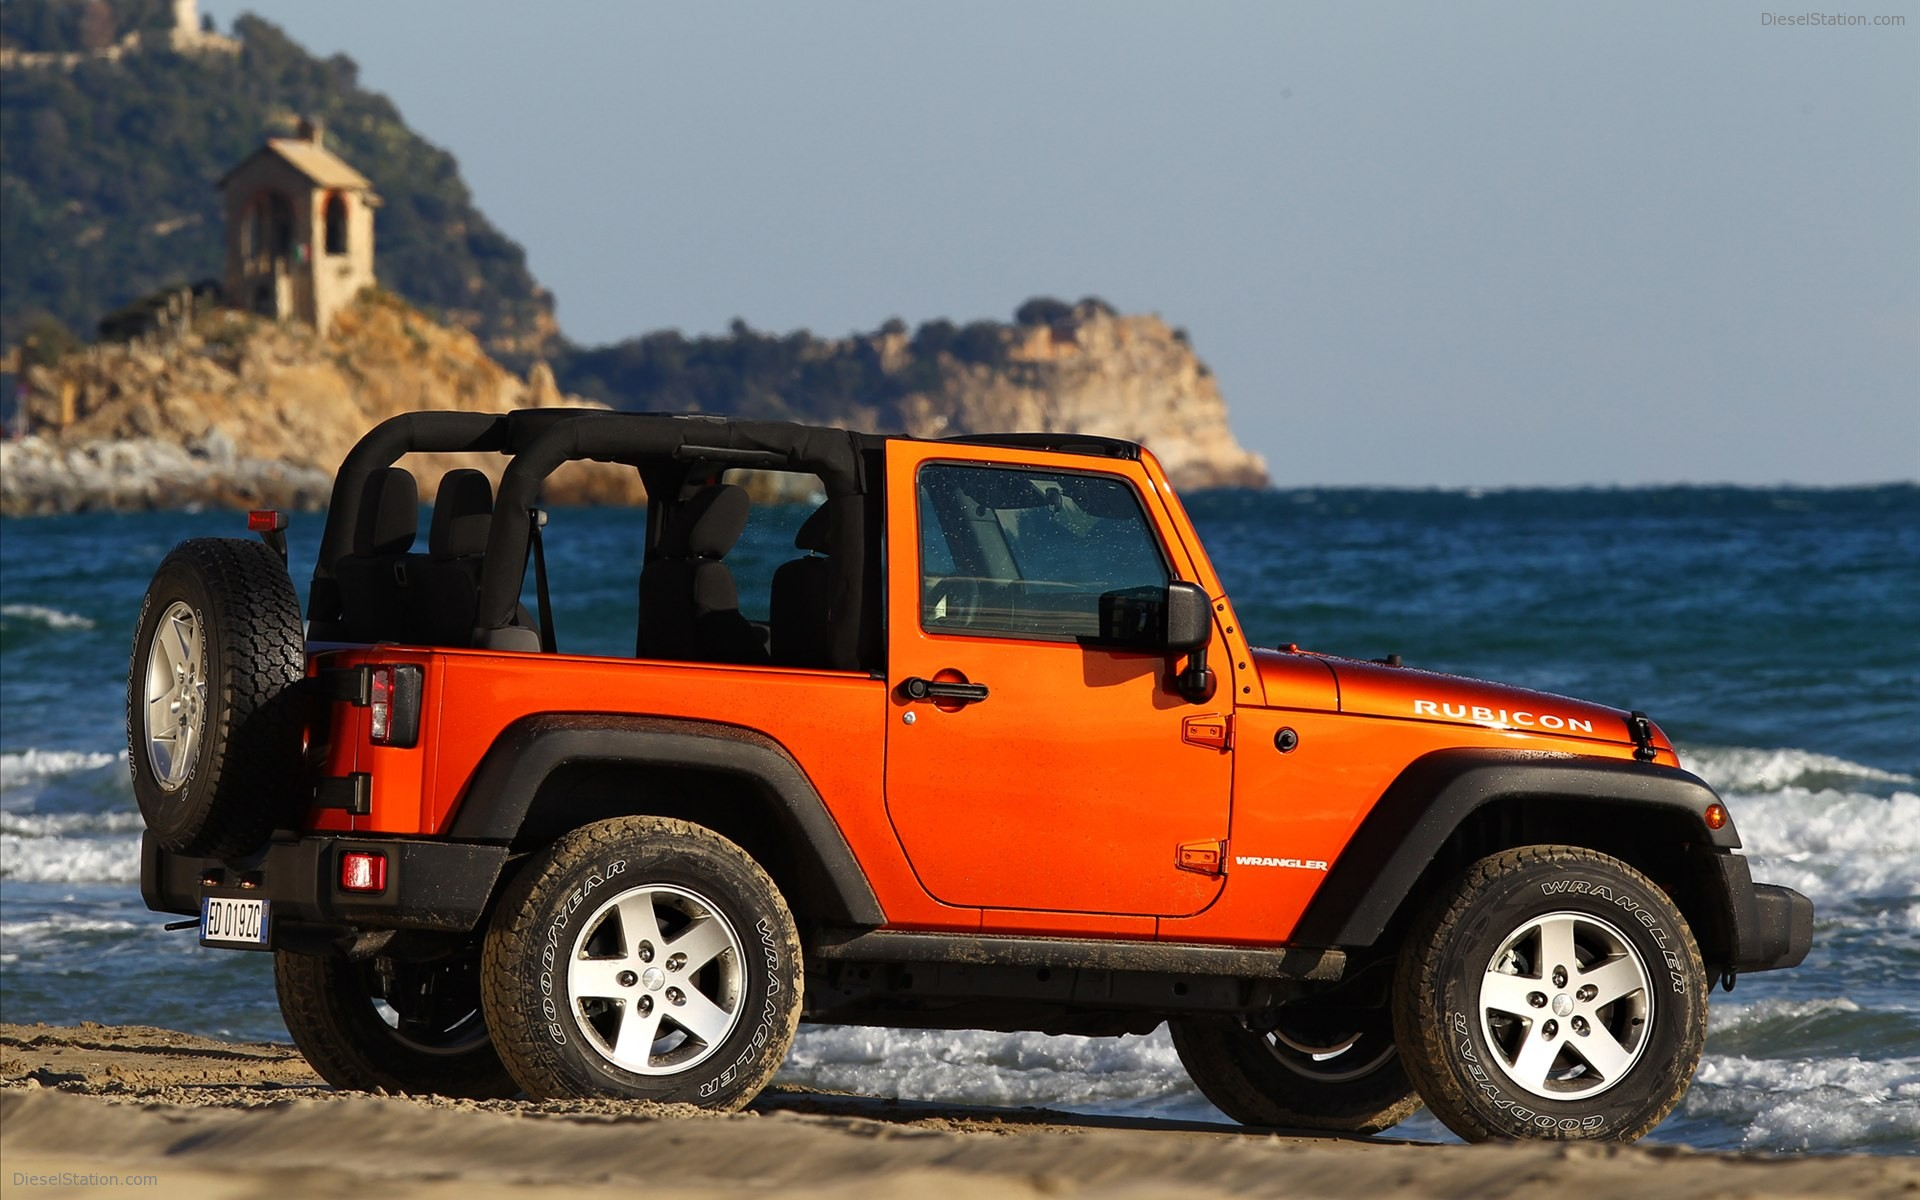 Home gt Jeep gt Jeep Wrangler 2012 1920x1200